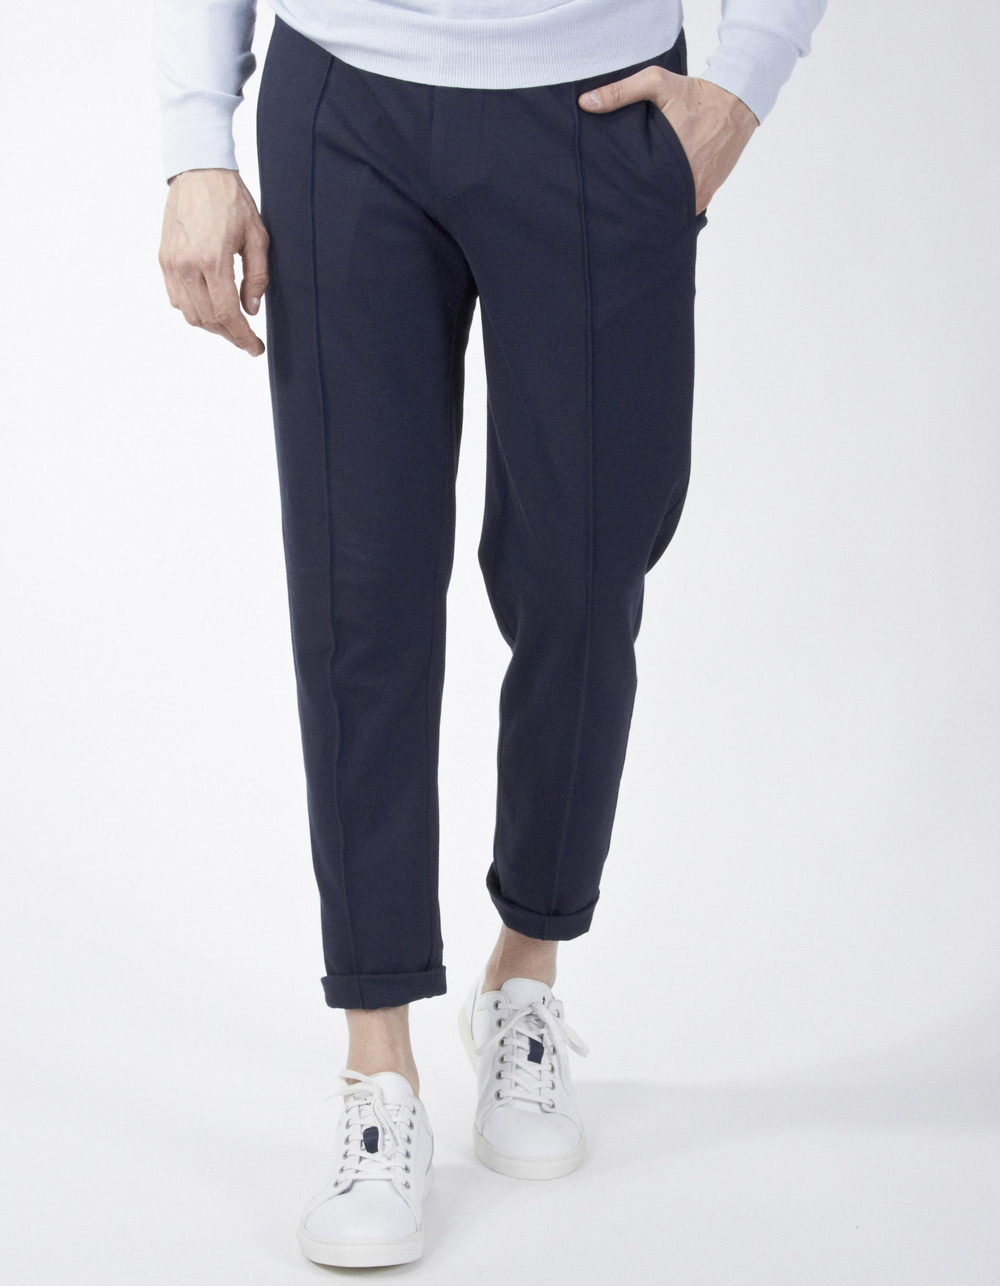 Navy blue trousers with darts and drawstring waist